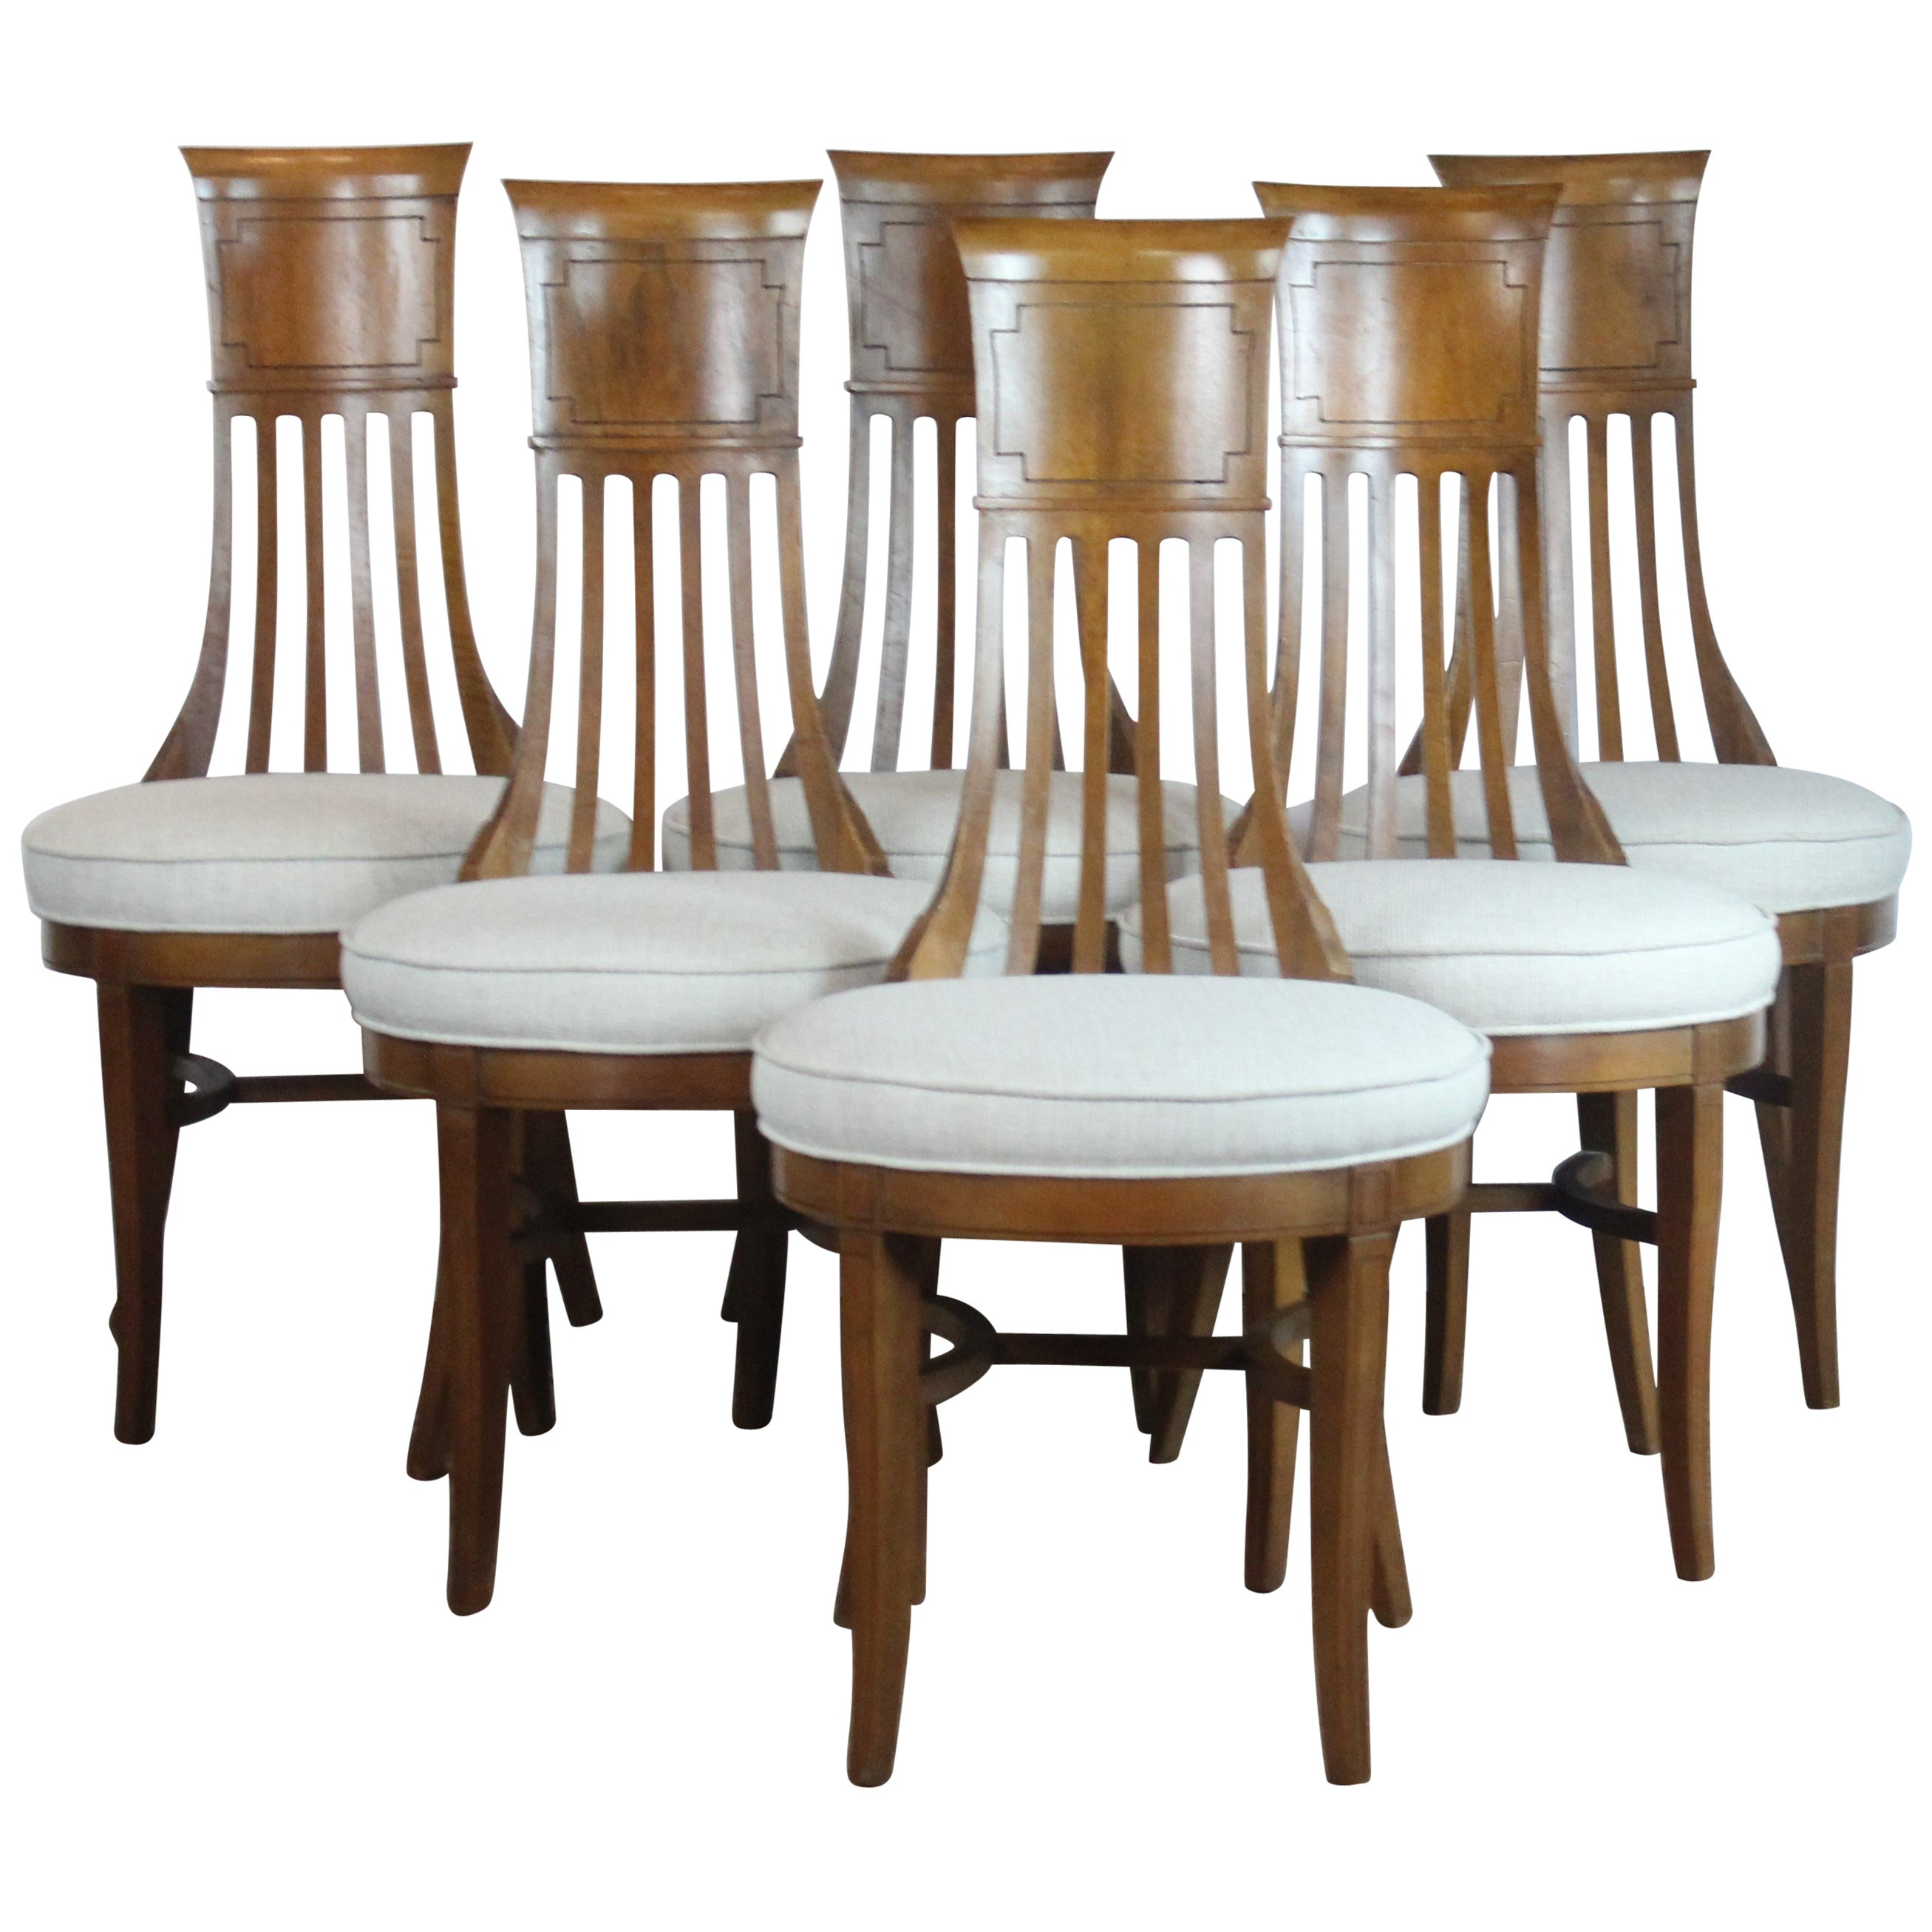 Dining Chair Set Of 6 Biedermier Style Dining Chair Set Of 6